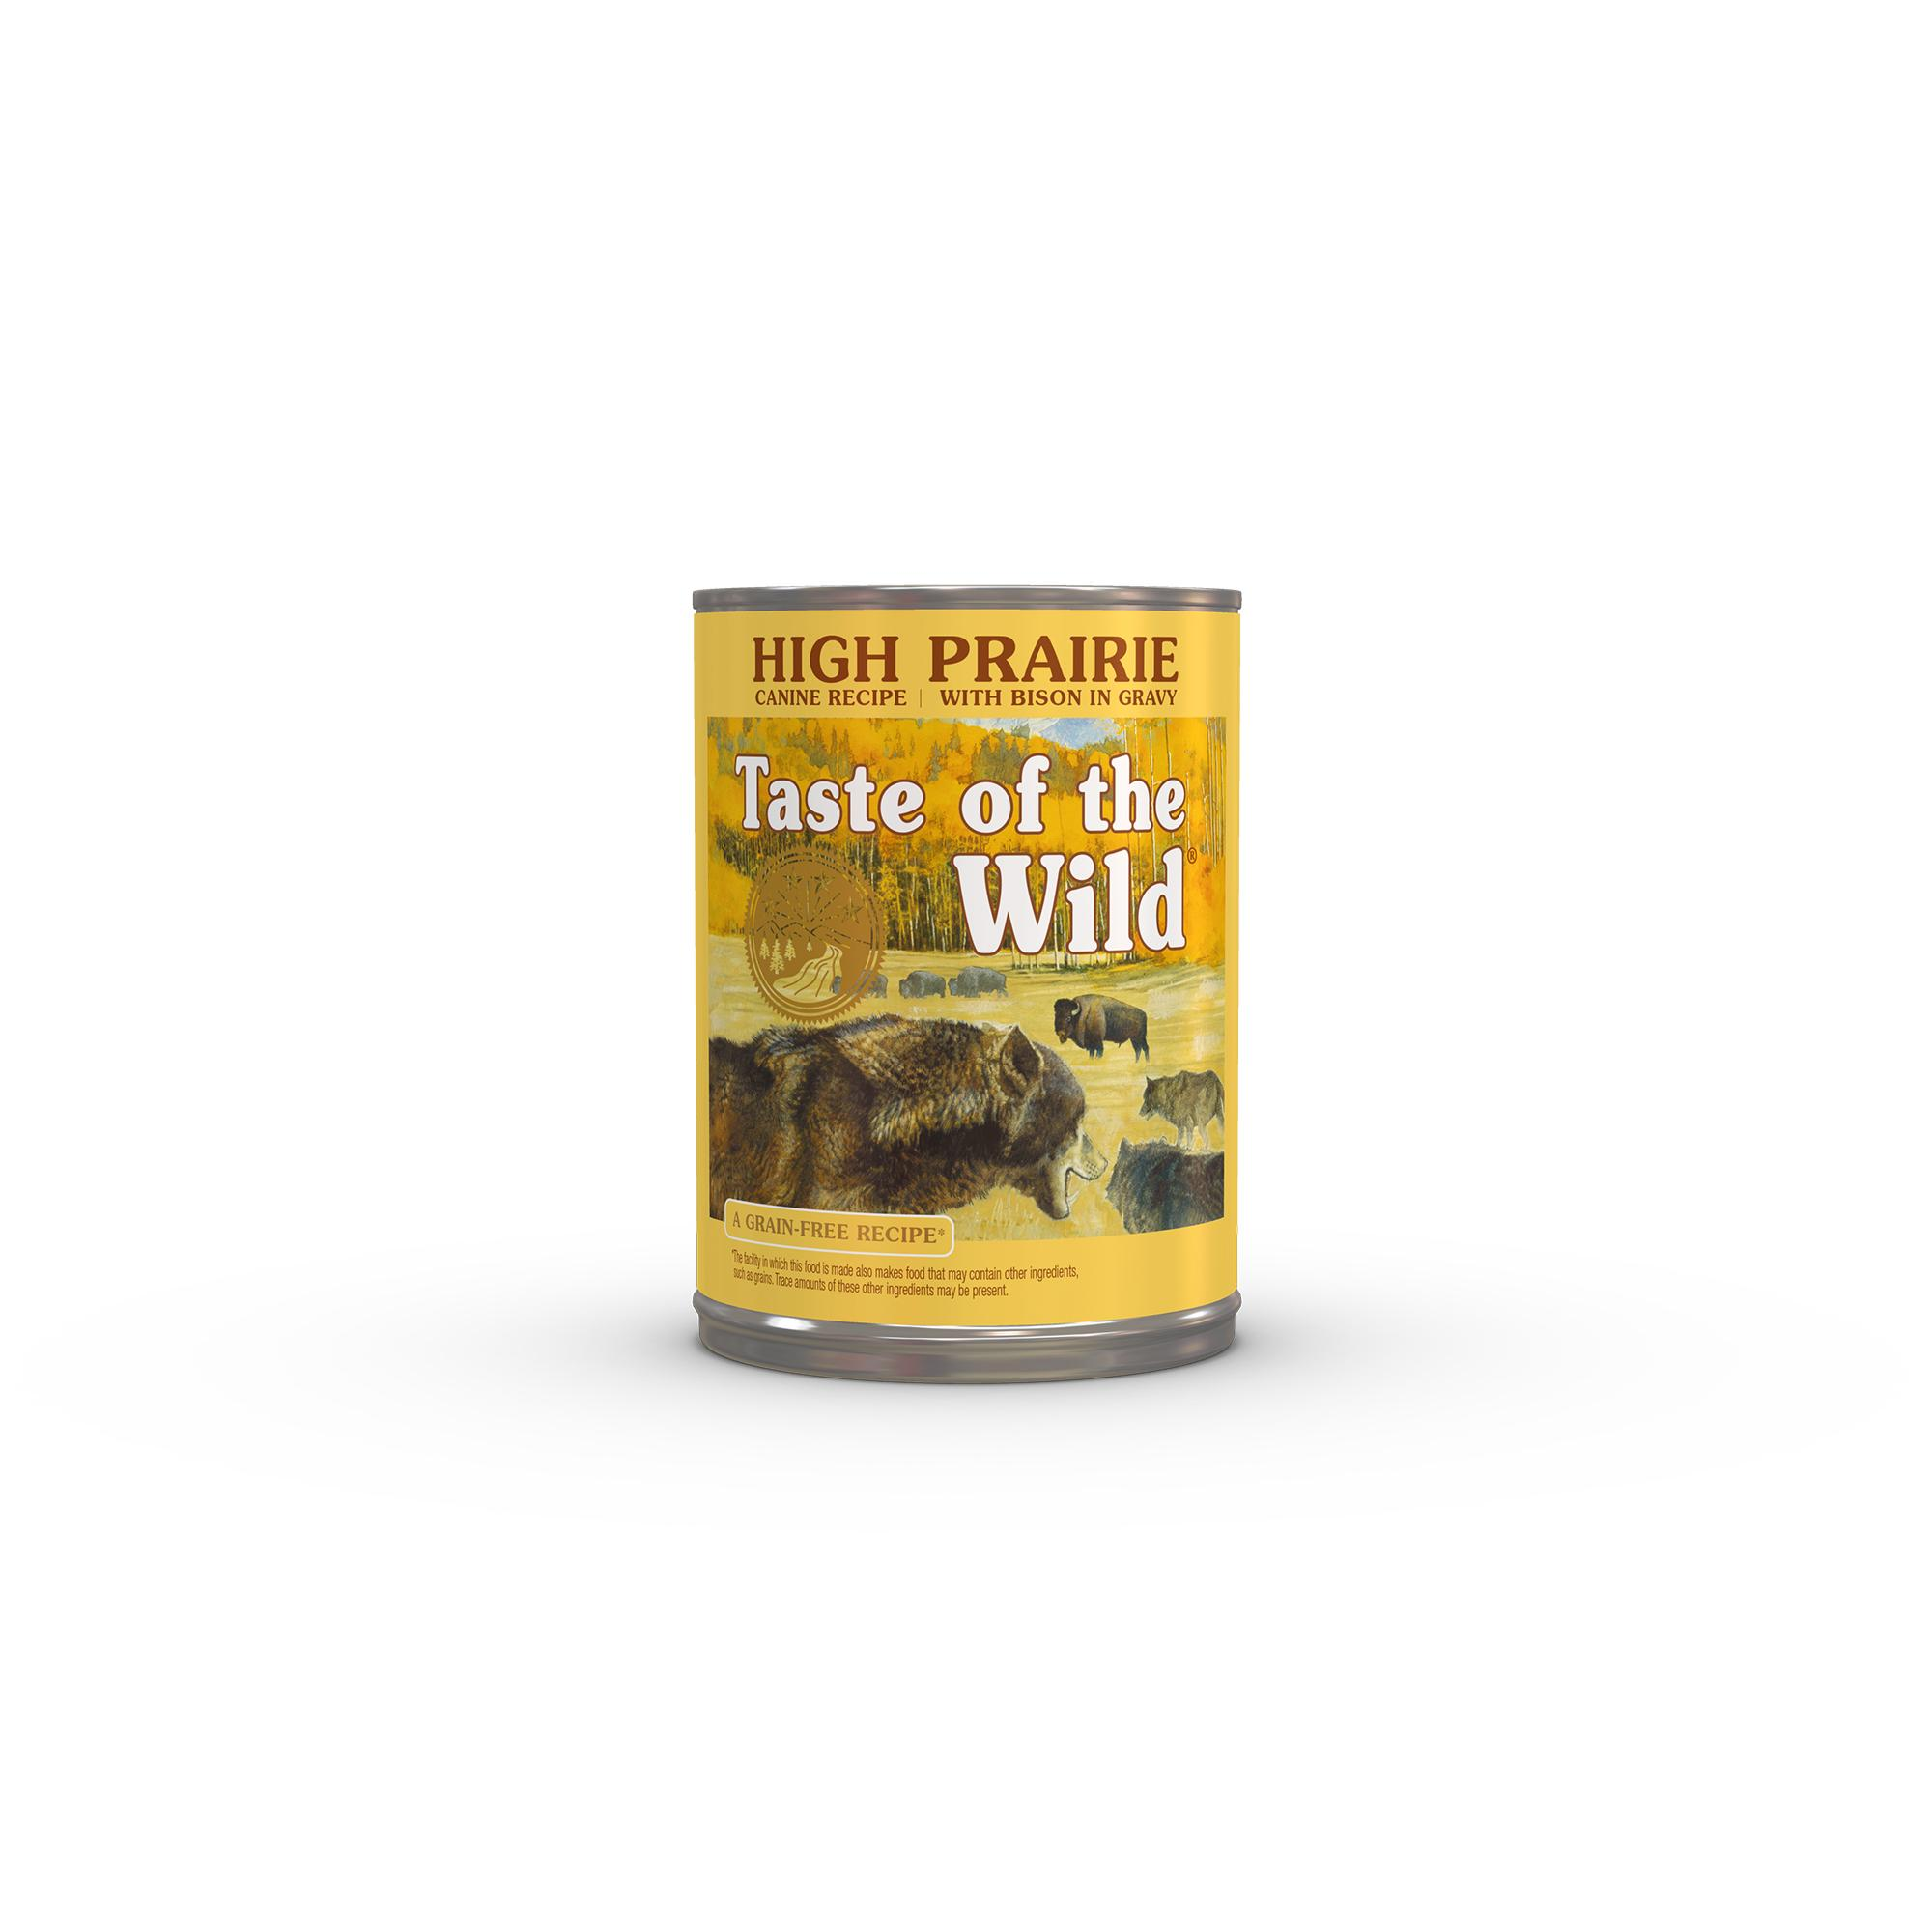 Taste of the Wild High Prairie Grain-Free Canned Dog Food Image